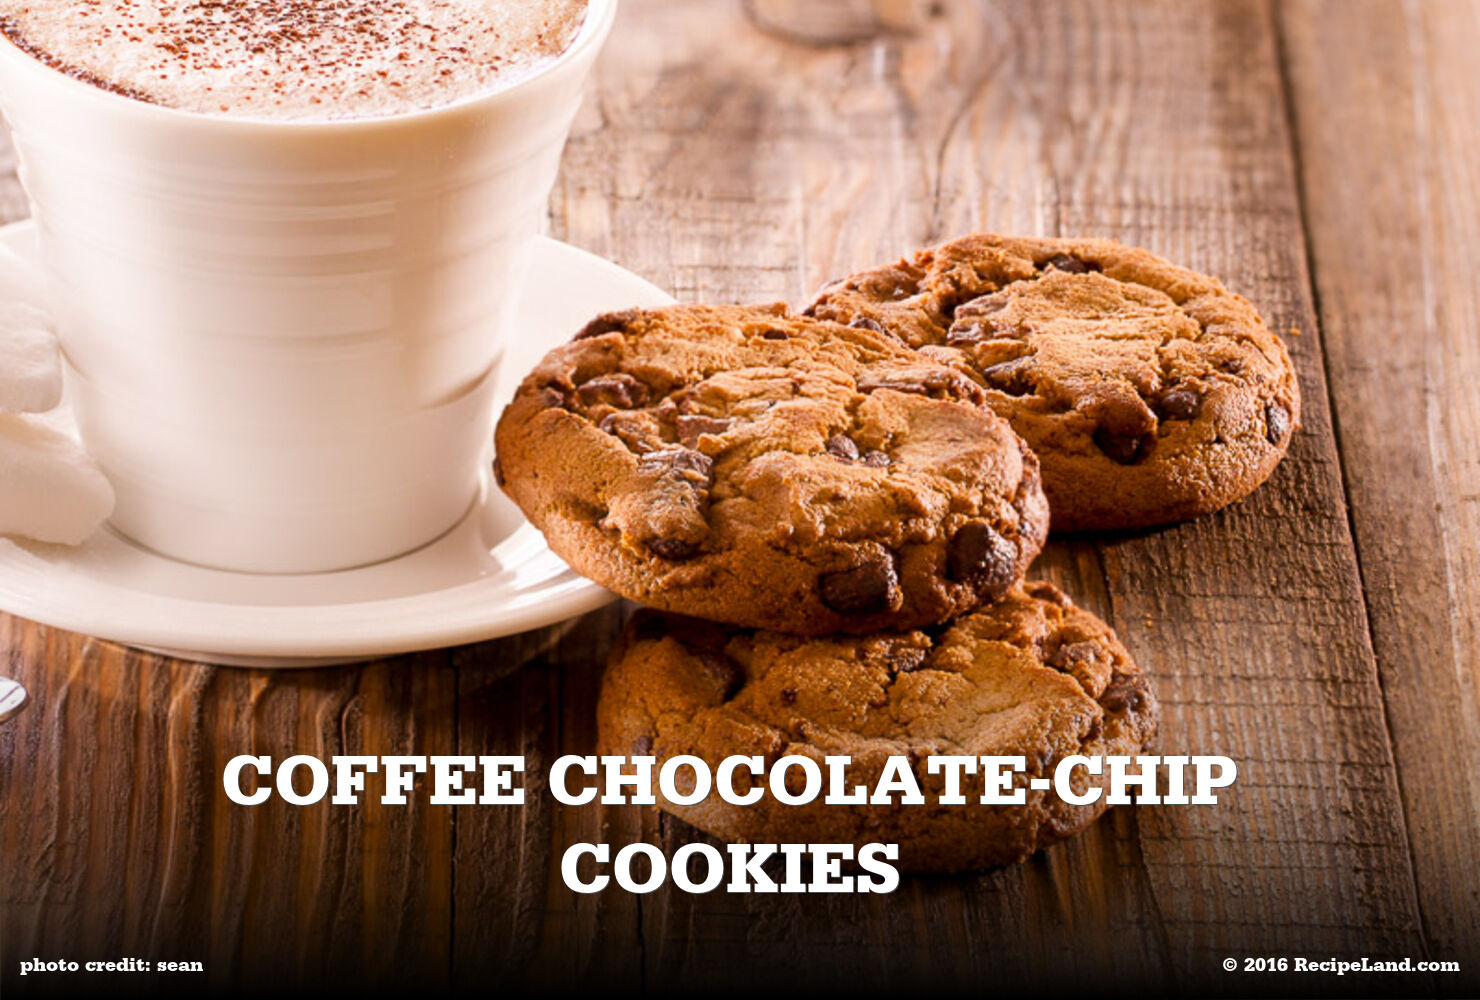 Coffee Chocolate-Chip Cookies